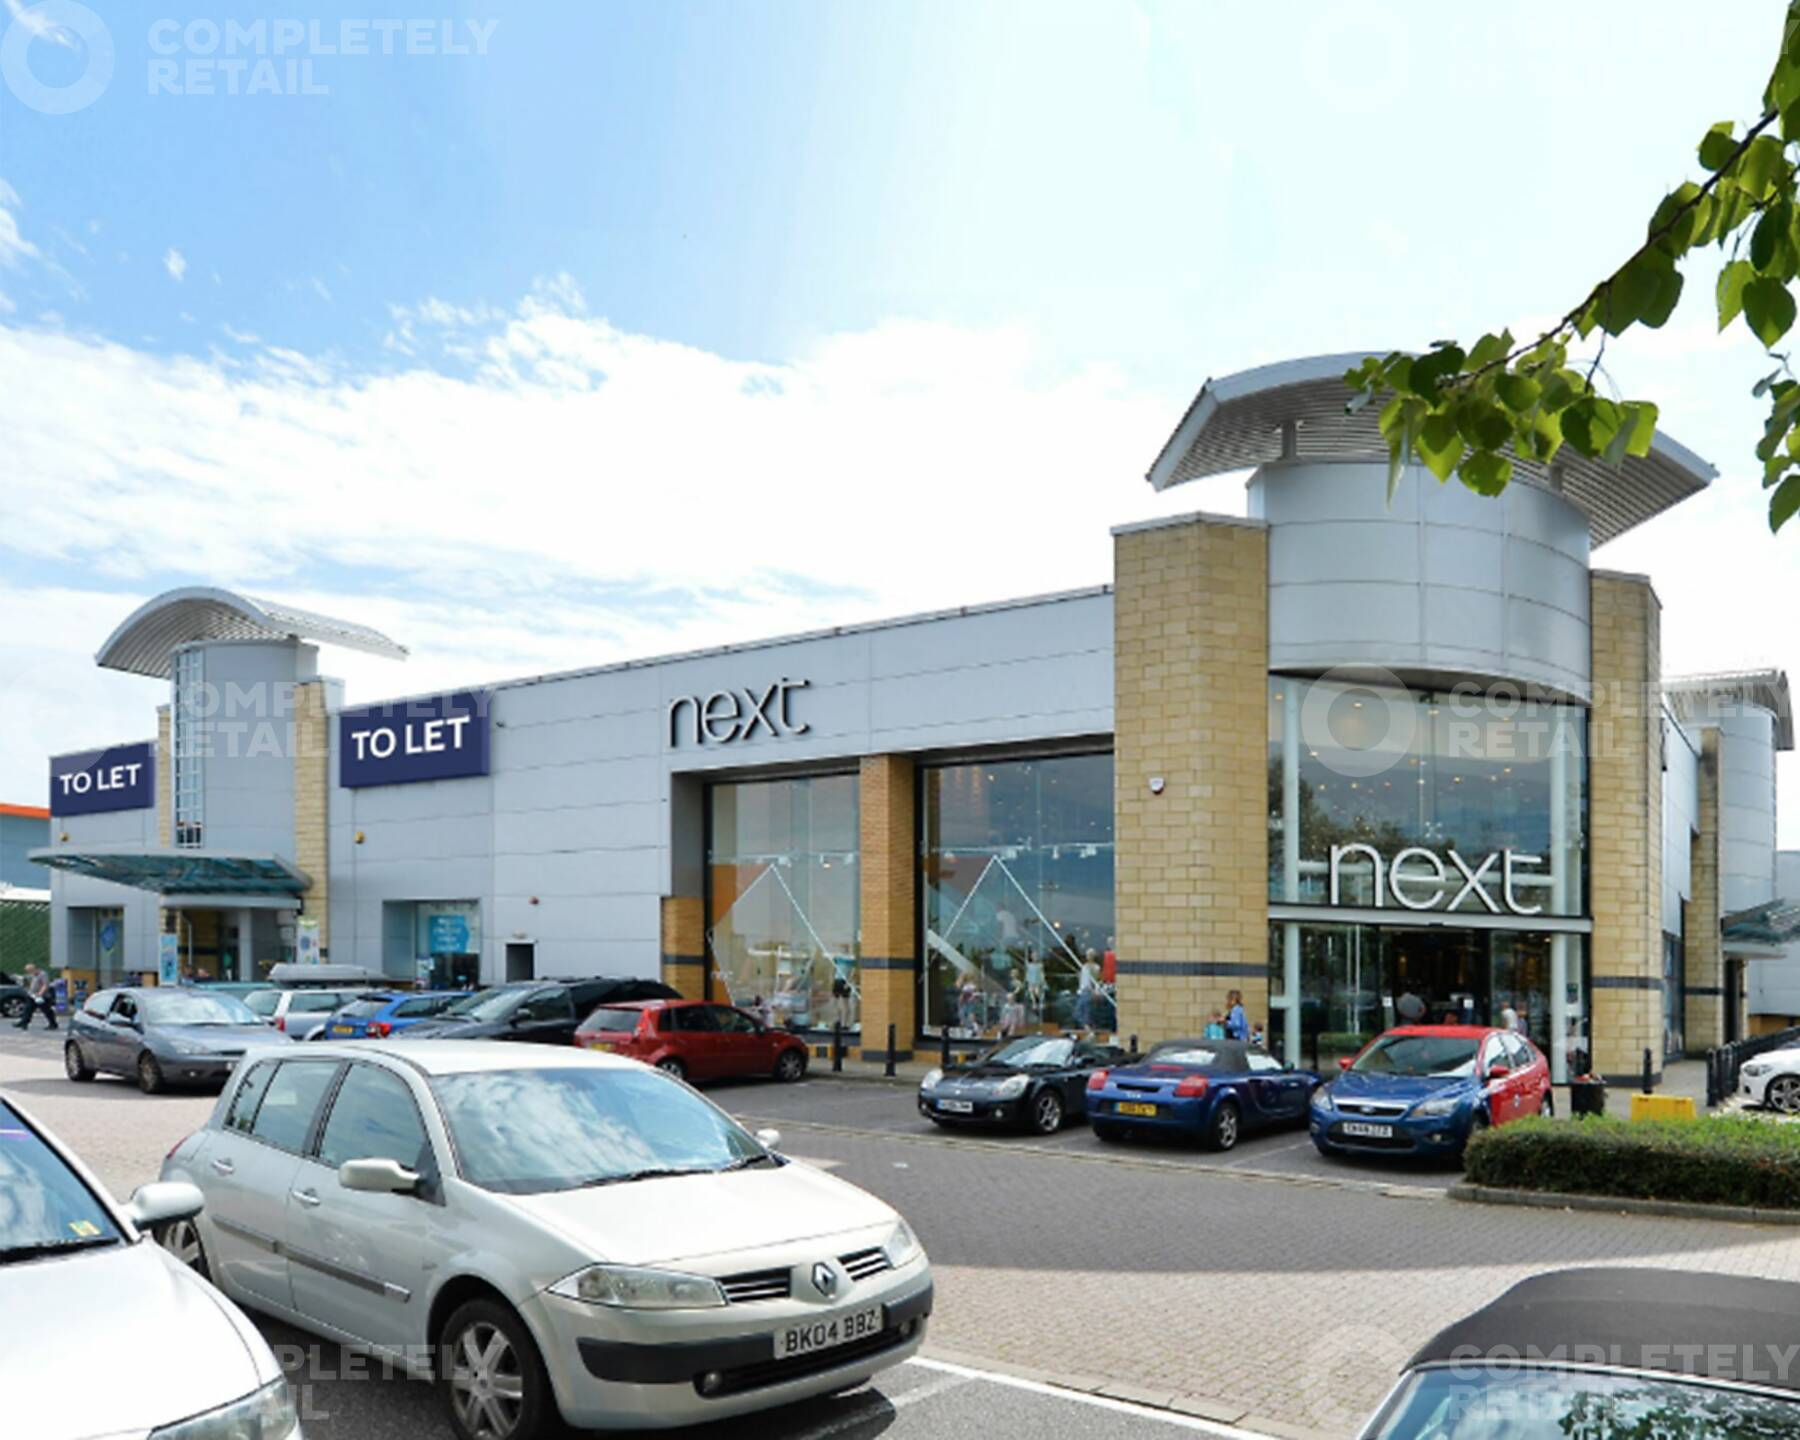 Wessex Gate East Retail Park